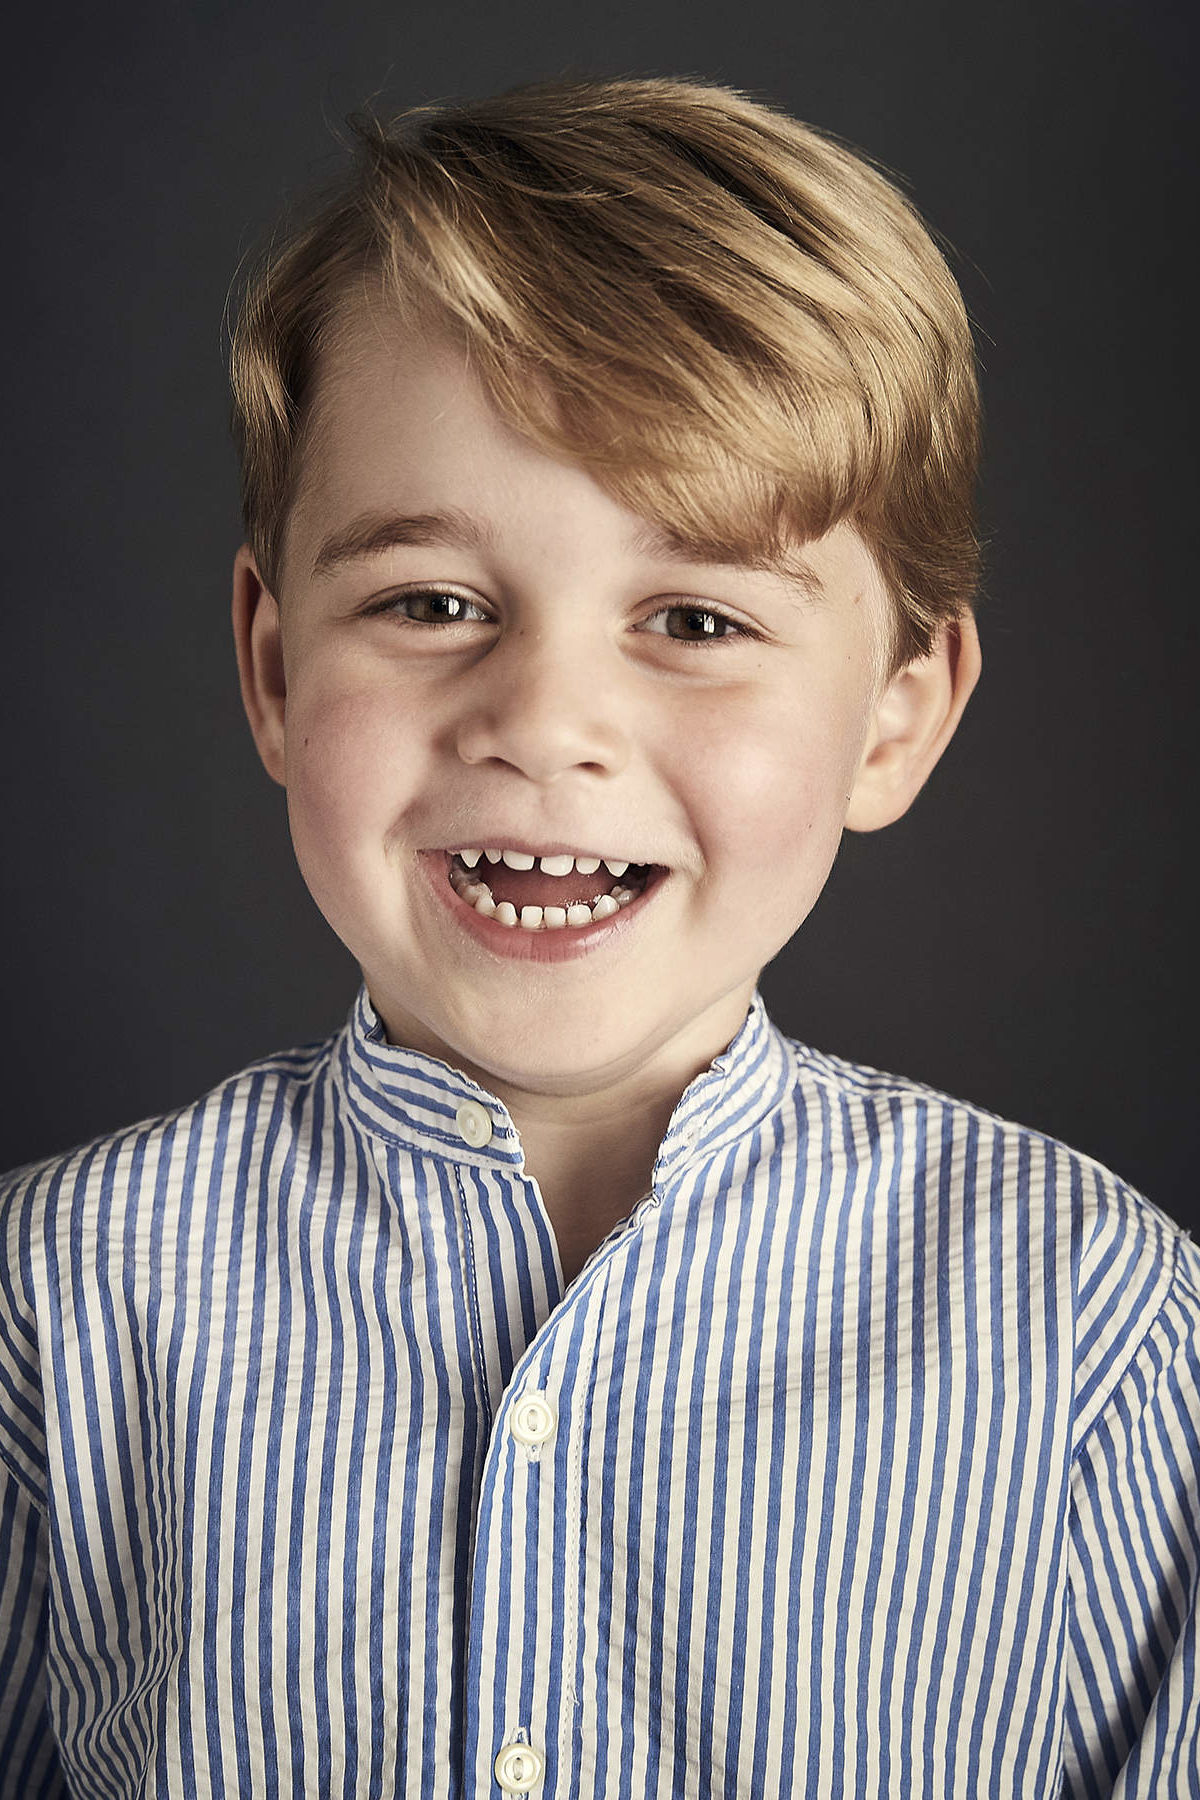 Prince George's New Birthday Portrait Is Here — and His Toothy Smile Is Pure Joy!